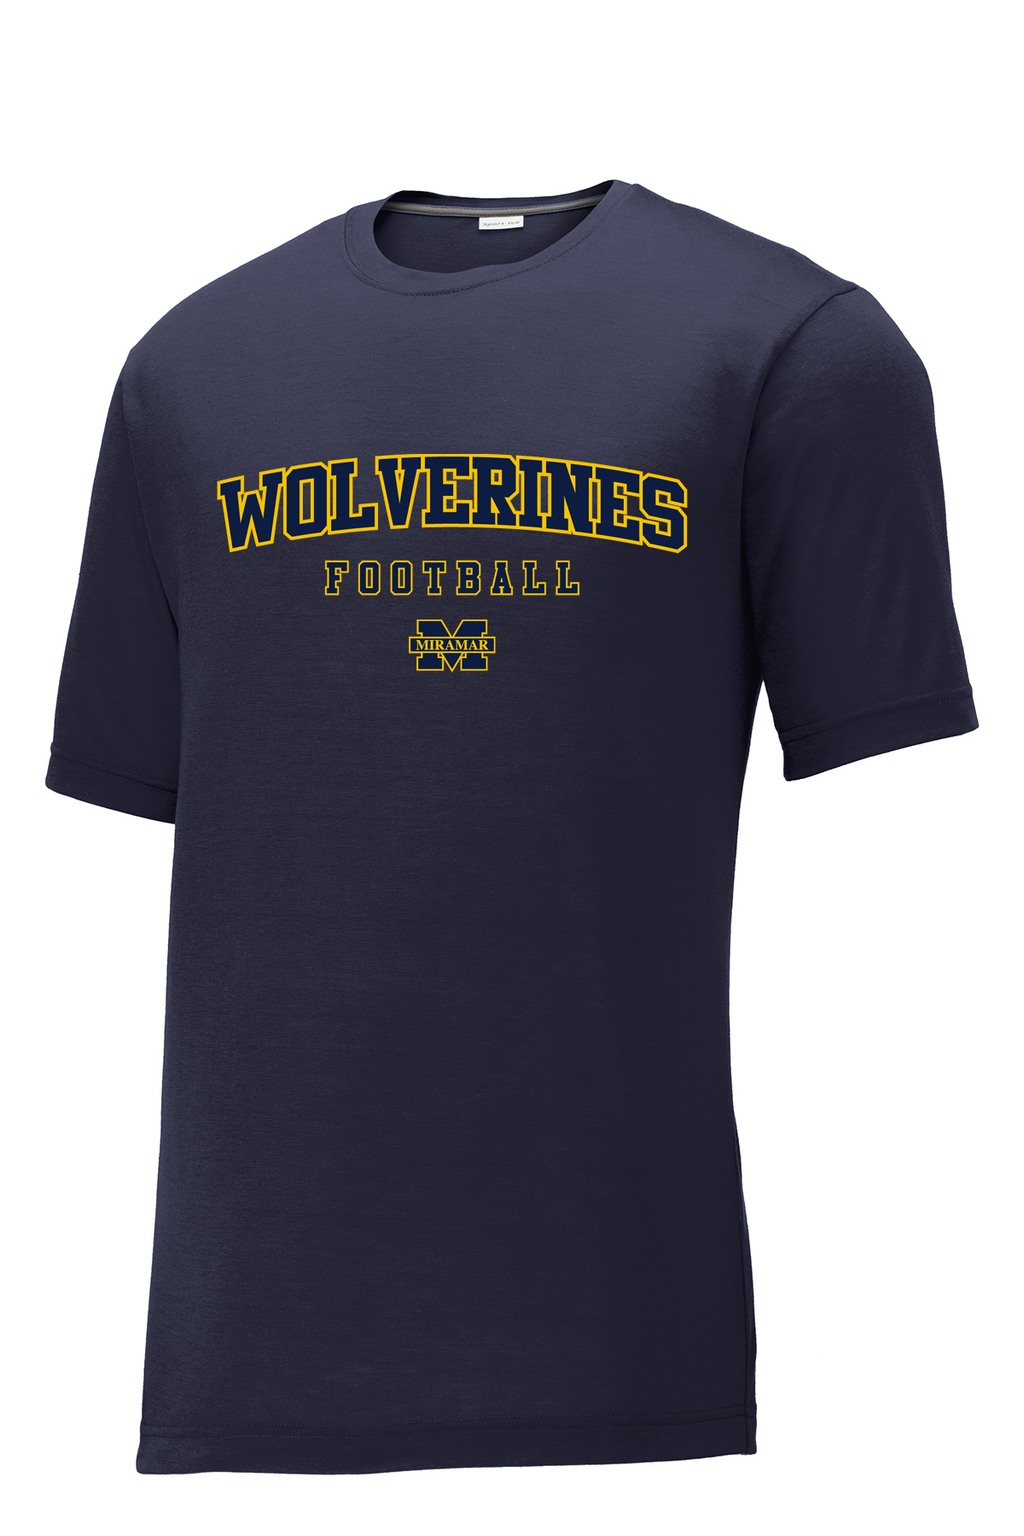 Miramar Wolverines Football CottonTouch Performance T-Shirt